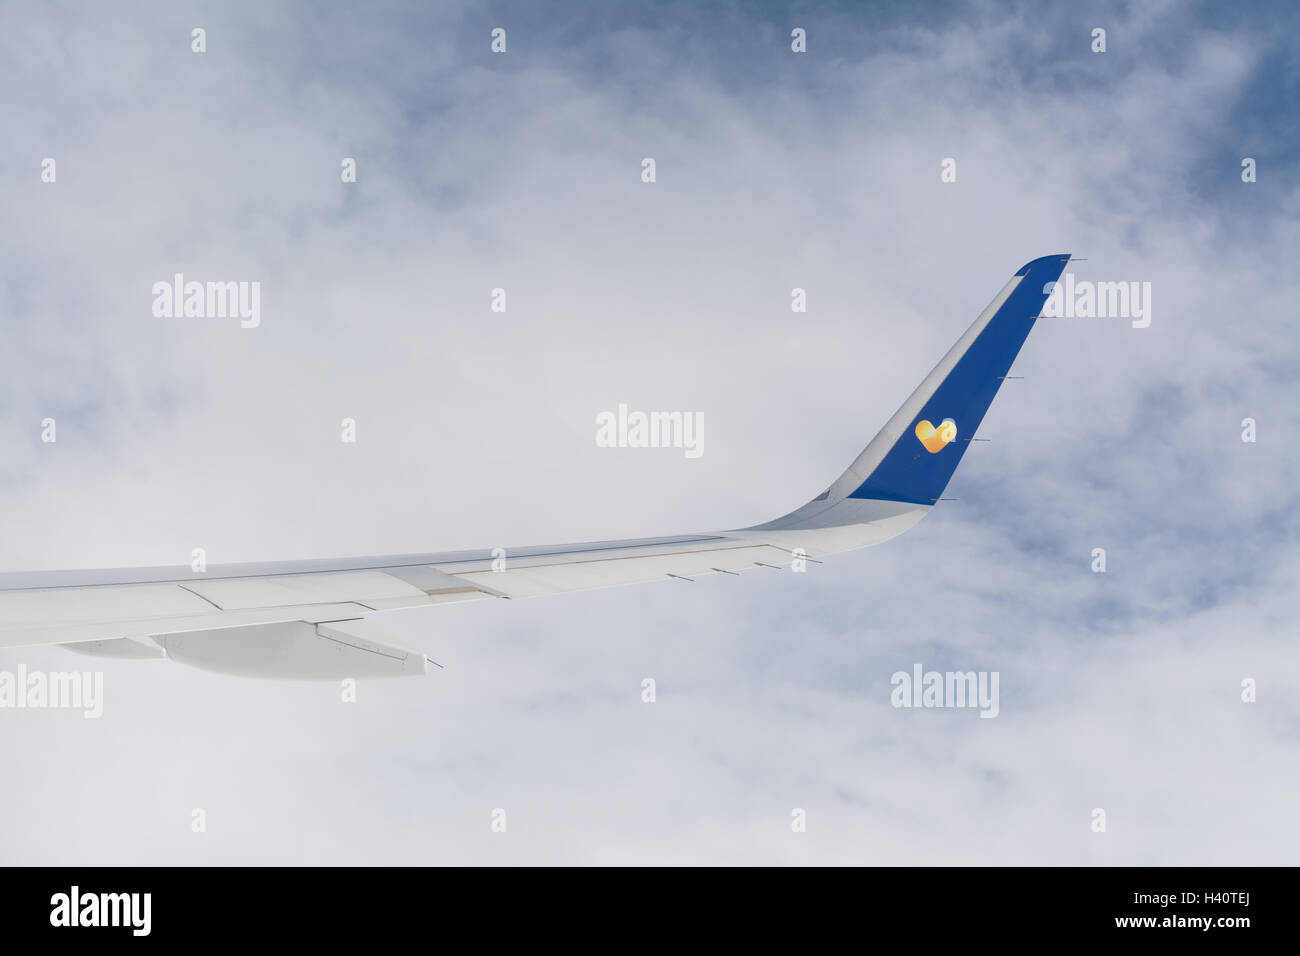 Thomas Cook plane wing with heart logo - Stock Image